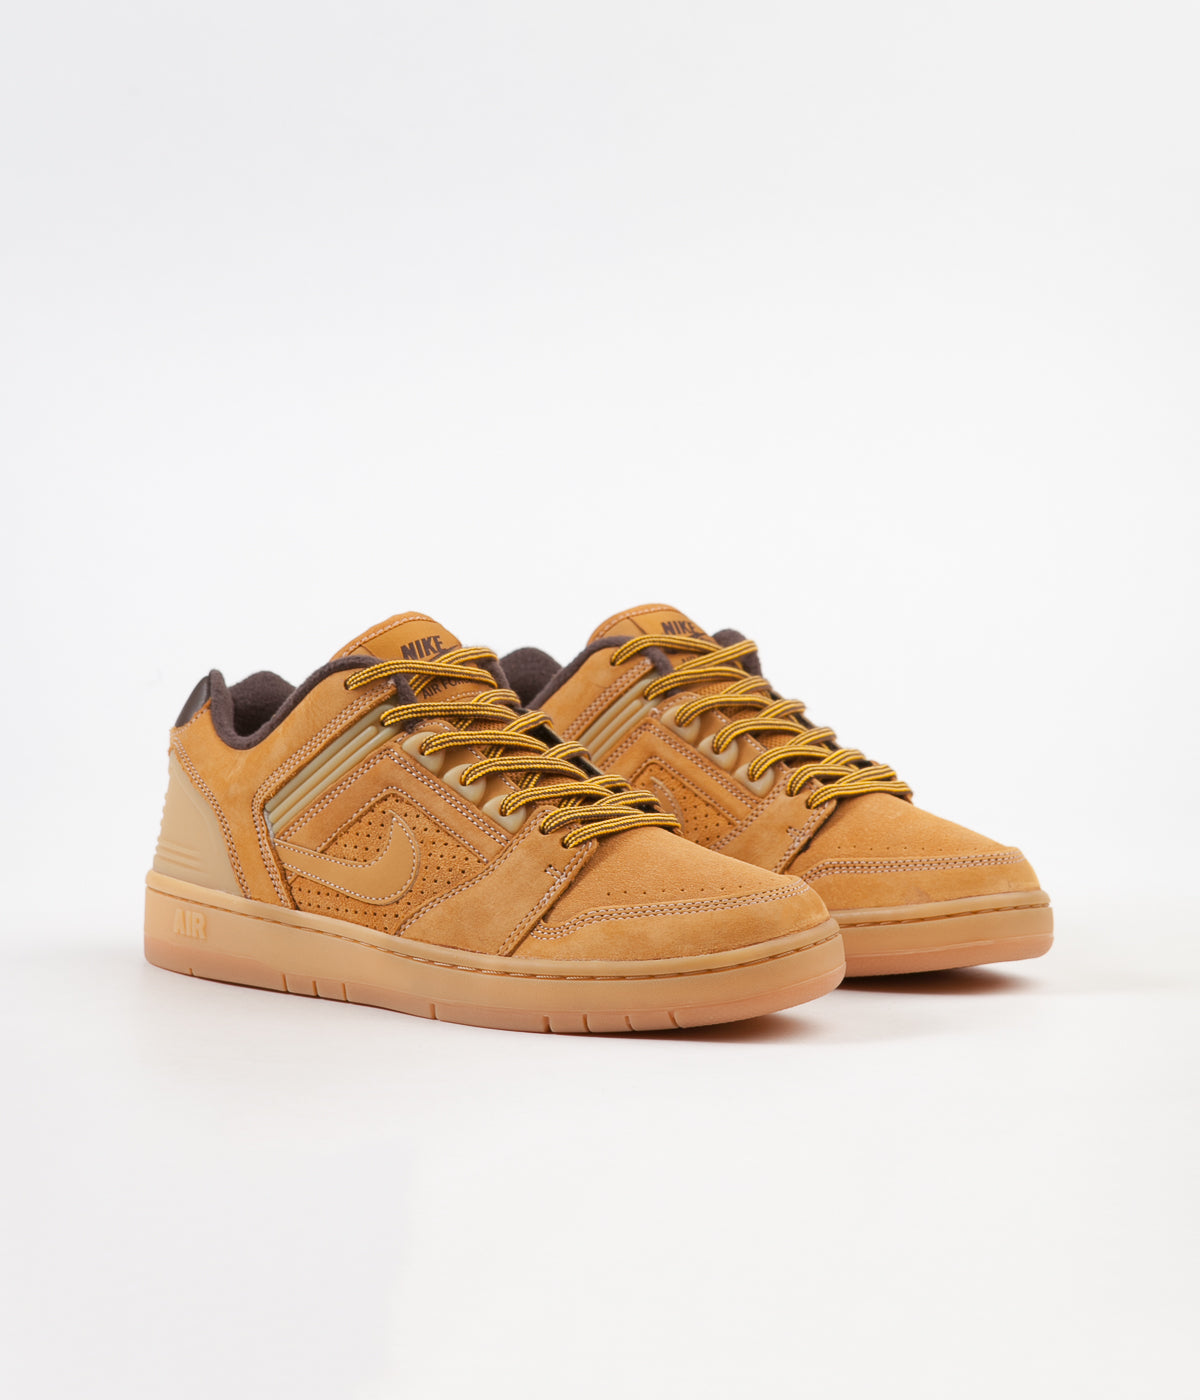 698008b9a5d9b Nike SB Air Force II Low Premium Shoes - Bronze   Bronze - Baroque Brown